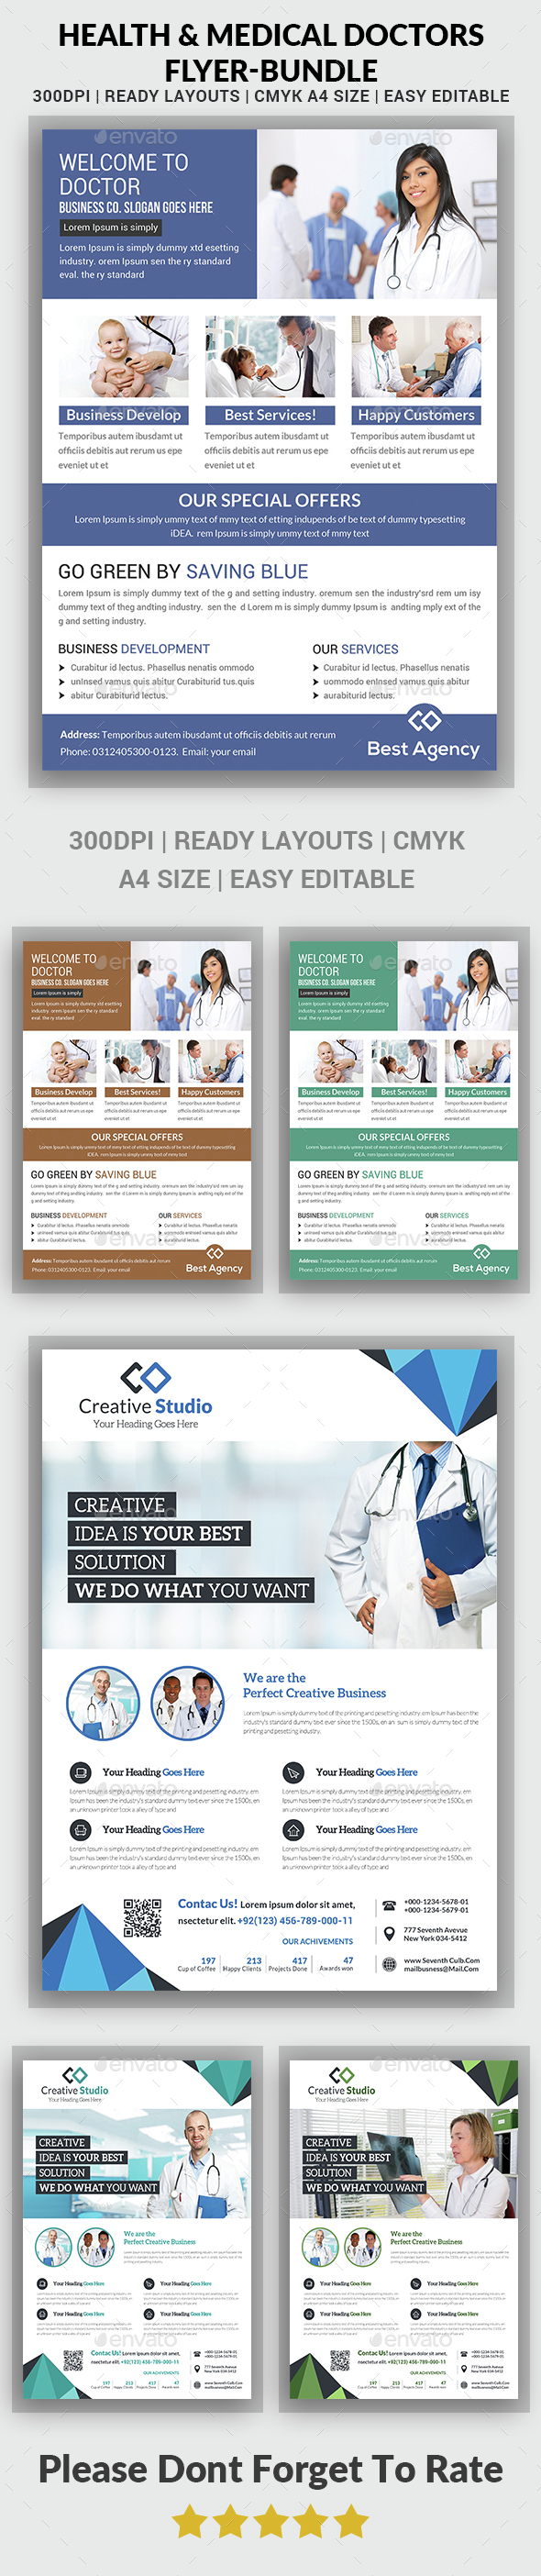 Medical Flyer Template - Bundle - Corporate Flyers